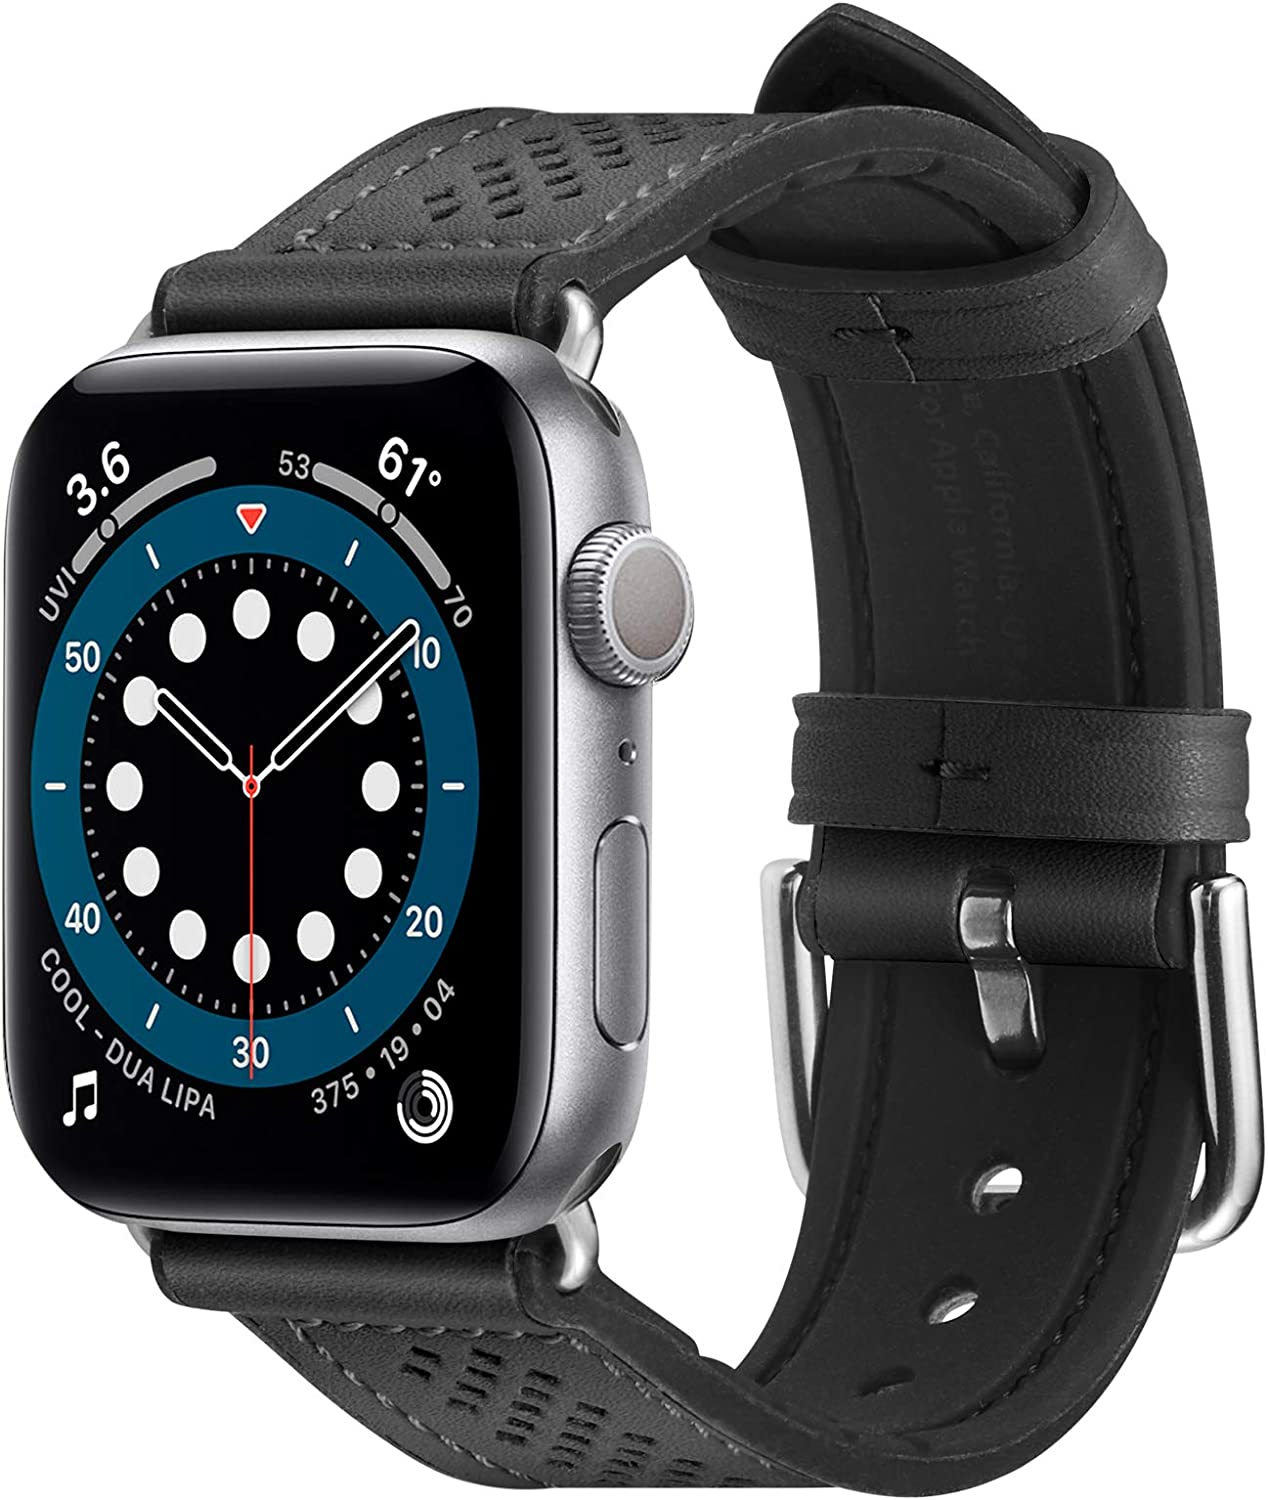 Spigen Retro Fit Designed for Apple Watch Band for 40mm/38mm Series 6/SE/5/4/3/2/1 - Black